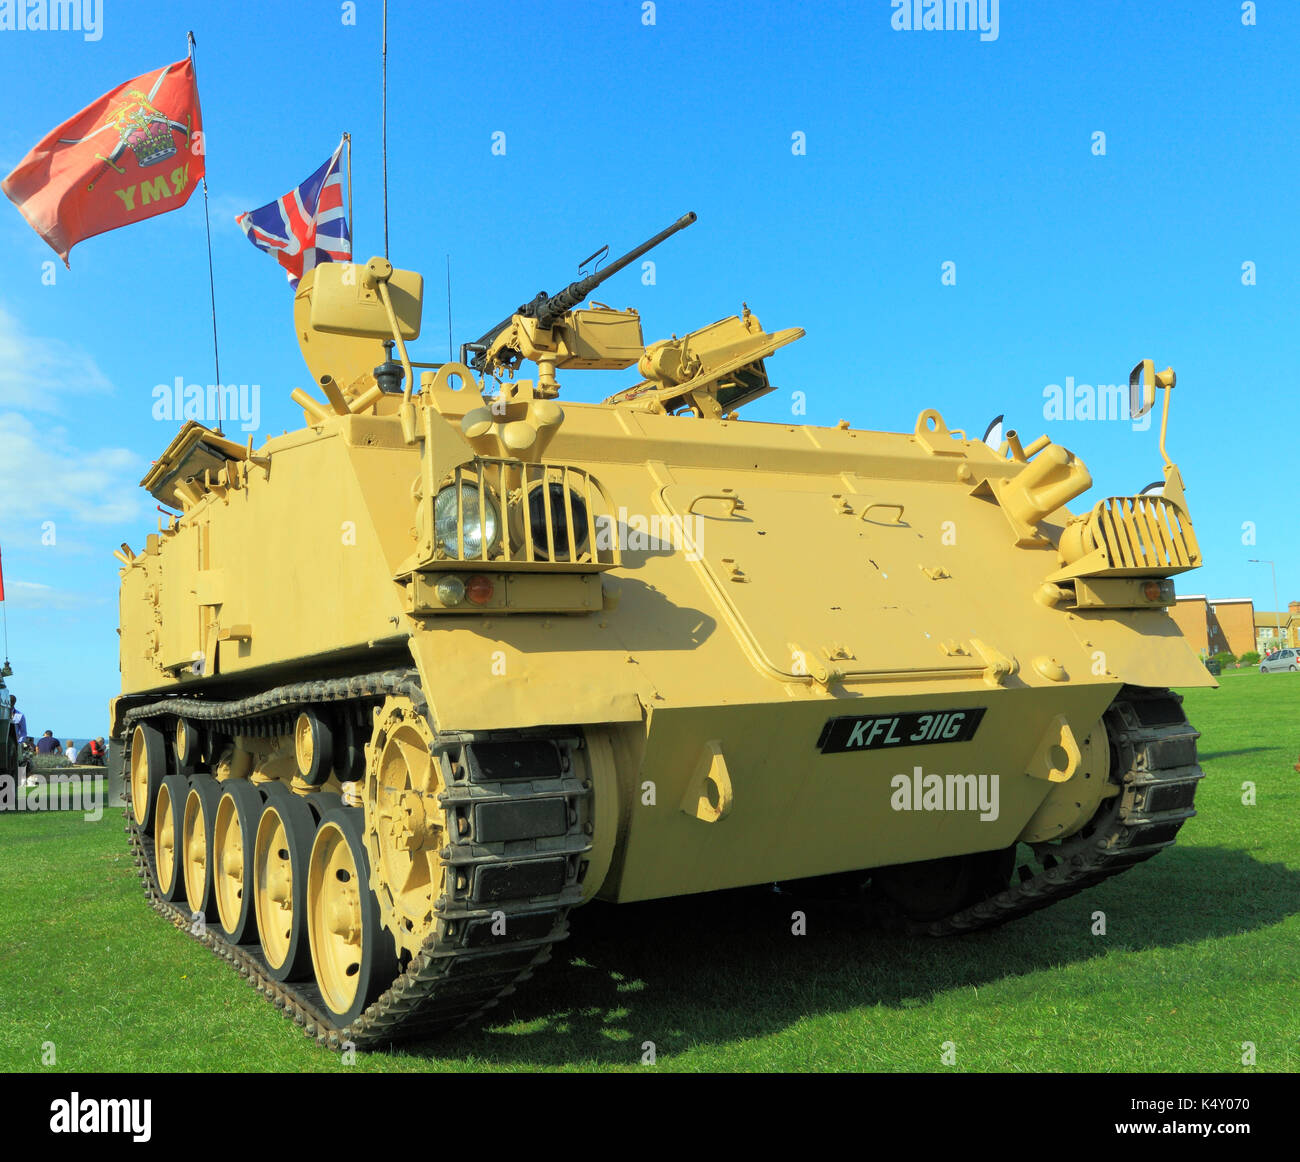 British Army 432 Tank, deployed in 1st Iraq War, military vehicle, vehicles, wars, army flag, union jack flag, flags, weapons, weaponry, England, UK - Stock Image